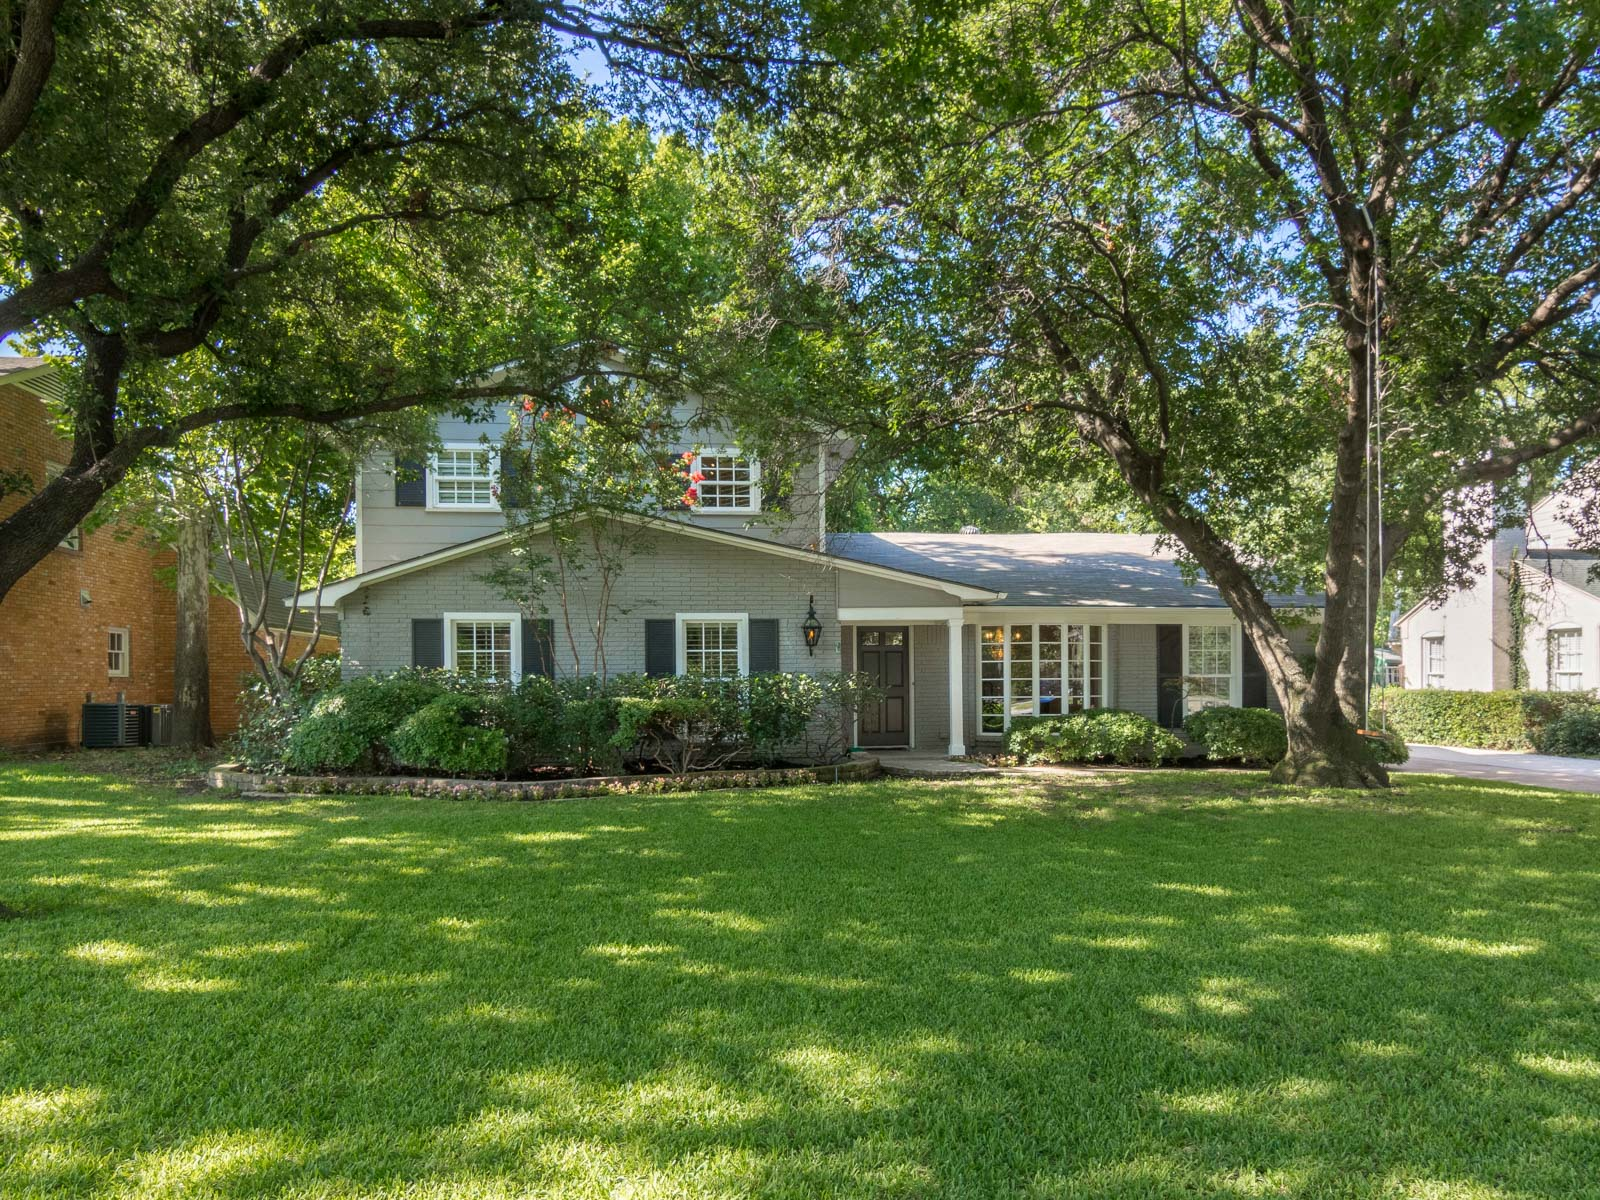 Single Family Home for Sale at Updated Greenway Parks 5550 W. University Boulevard Dallas, Texas 75209 United States